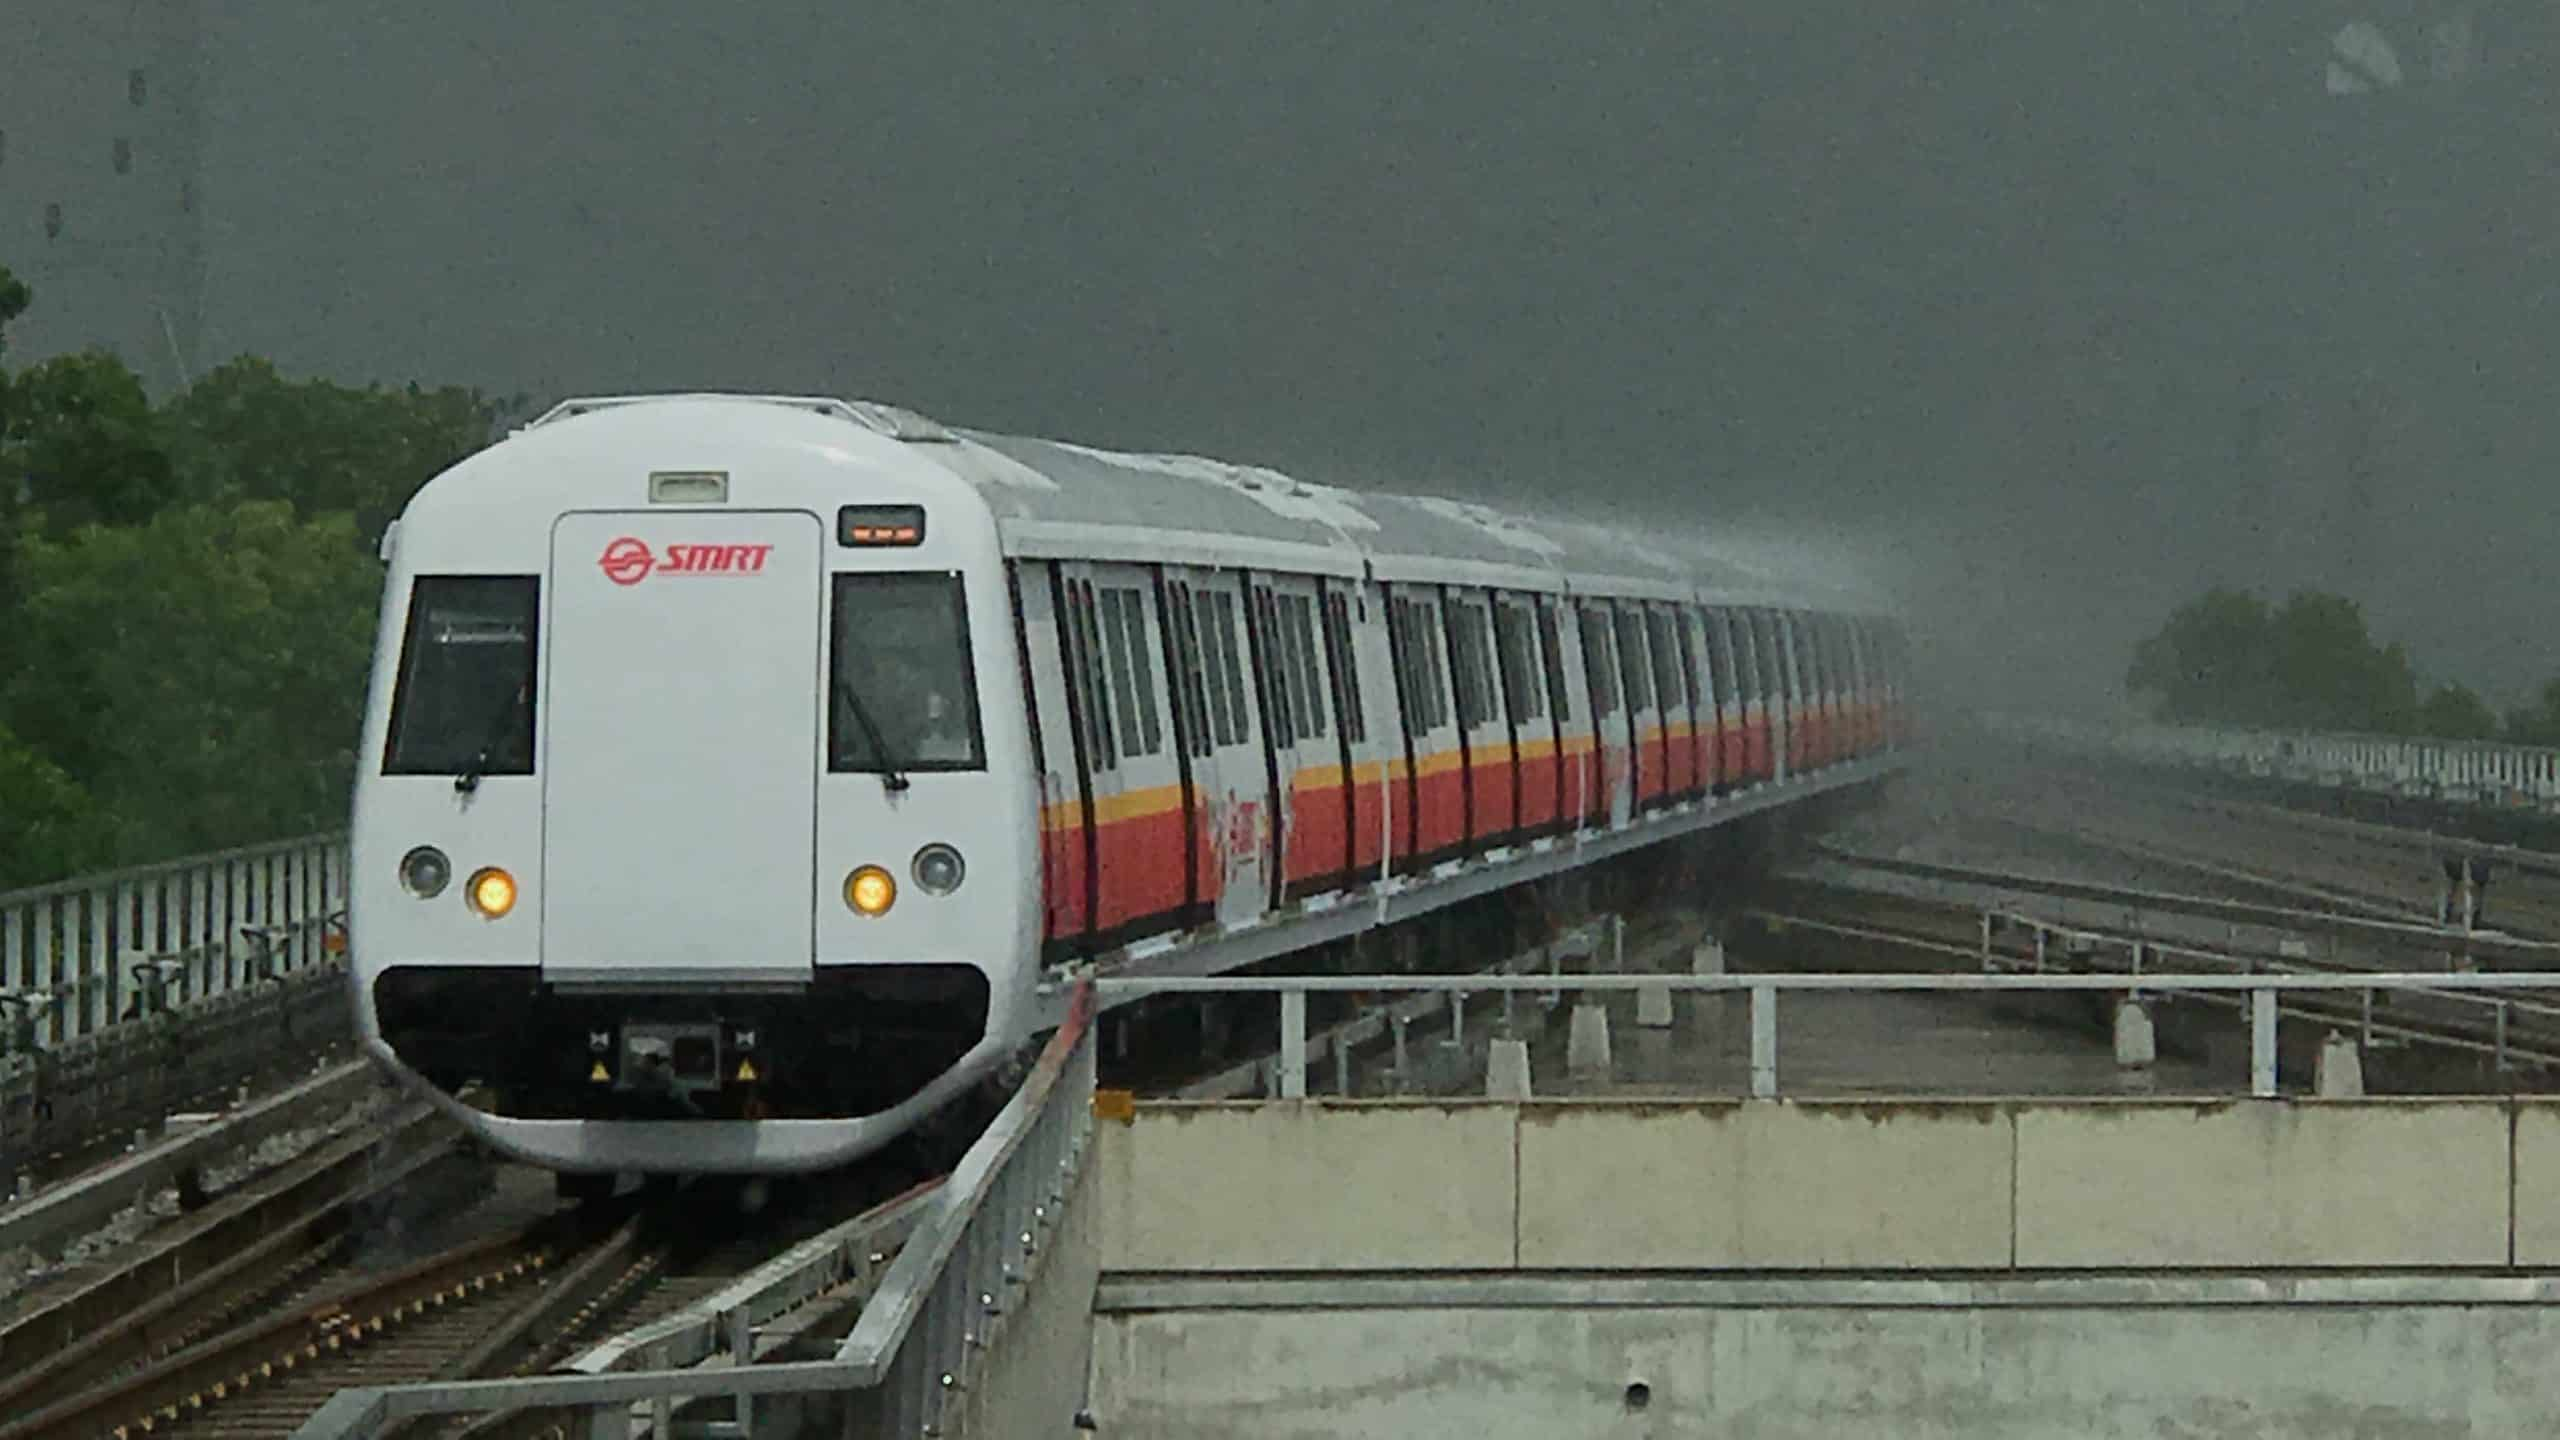 Why I Will Not Invest In Companies Like SMRT